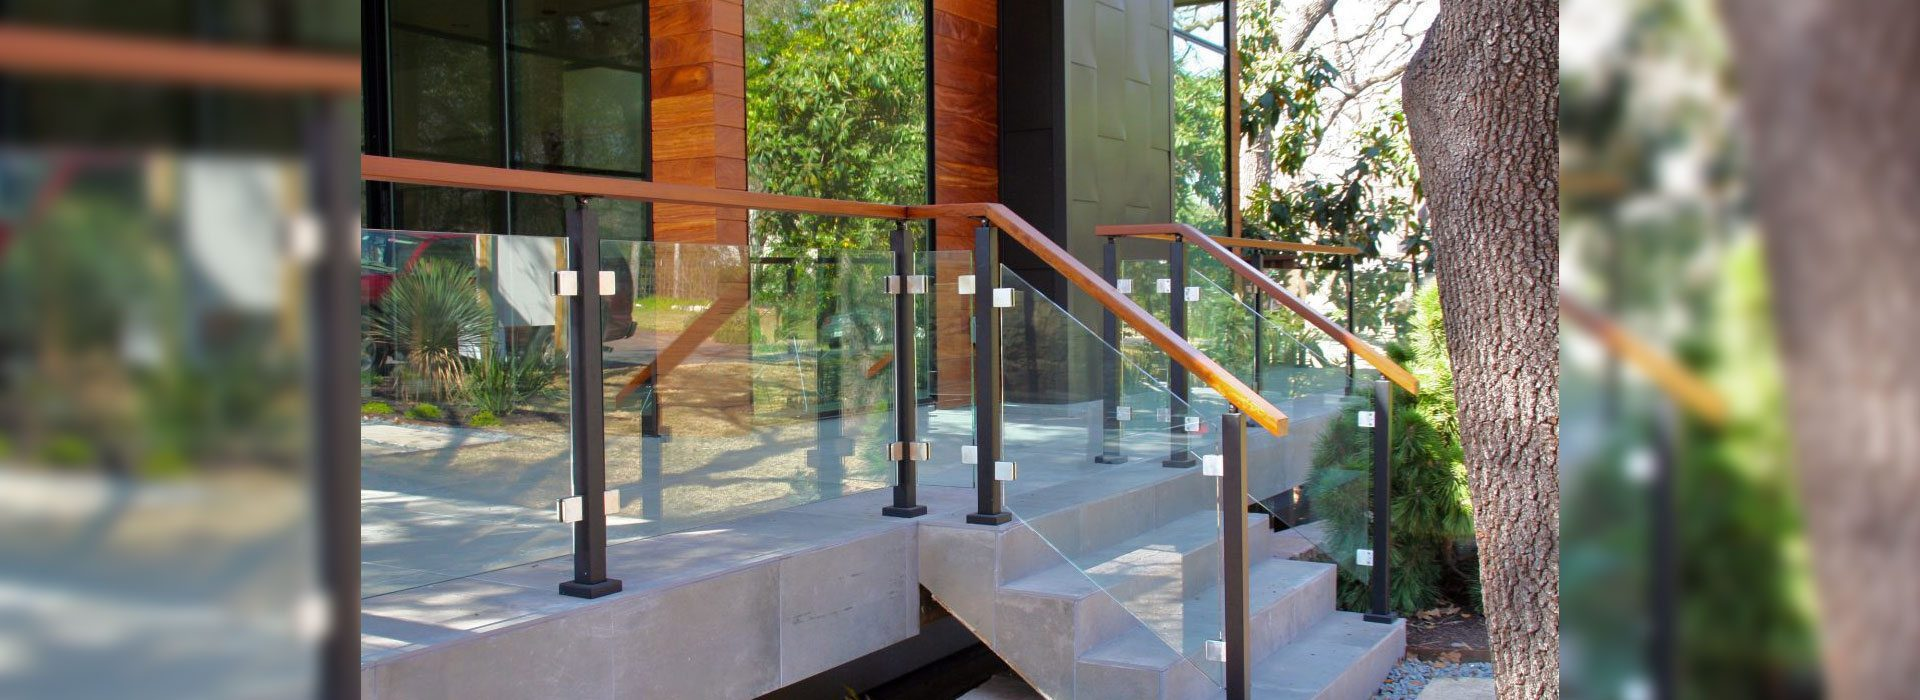 Glass Handrail Systems | Exterior Handrail System | Residential Products & Services | Anchor-Ventana Glass Company